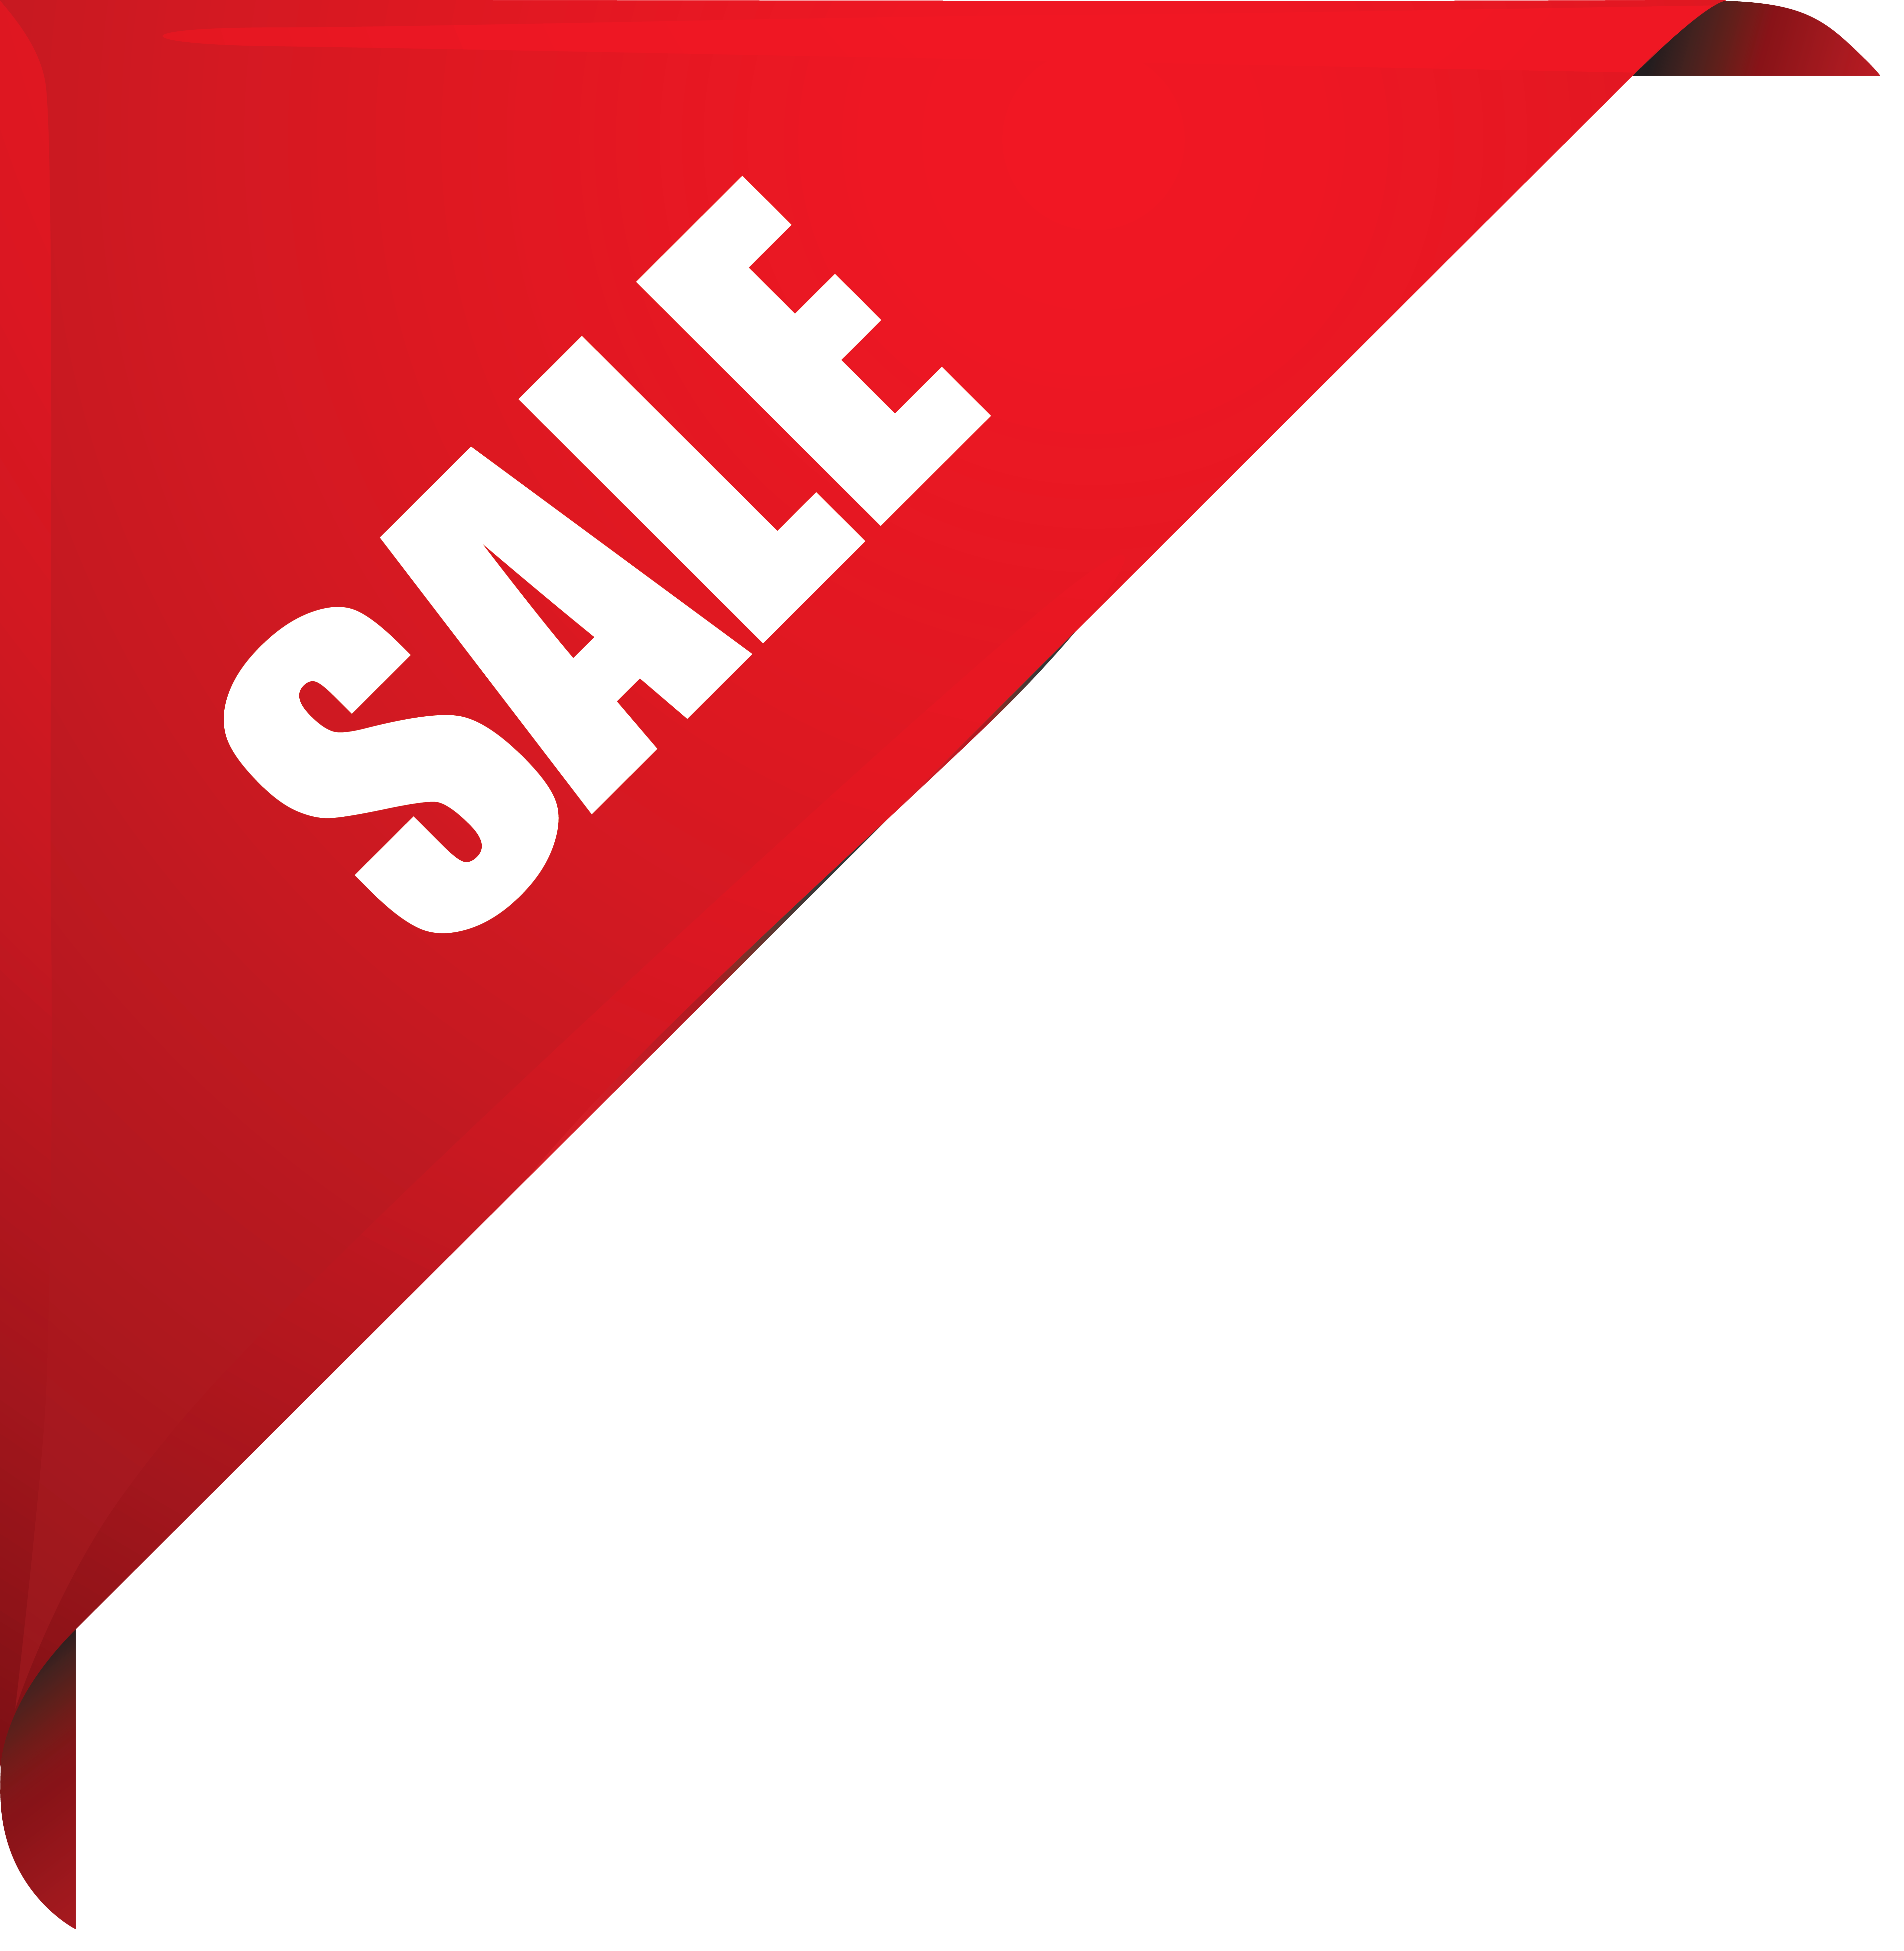 Sale png icon. Corner clipart image gallery